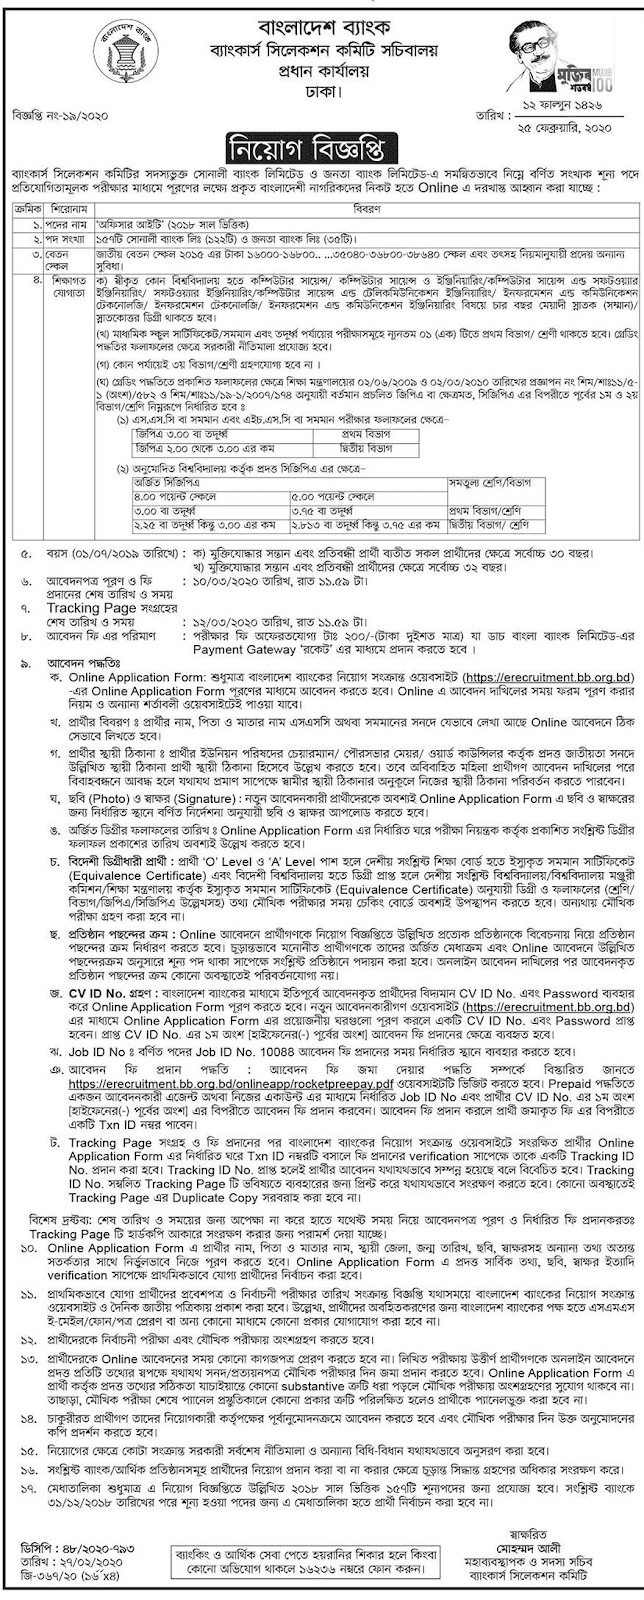 Janata Bank Ltd Job Circular 2020